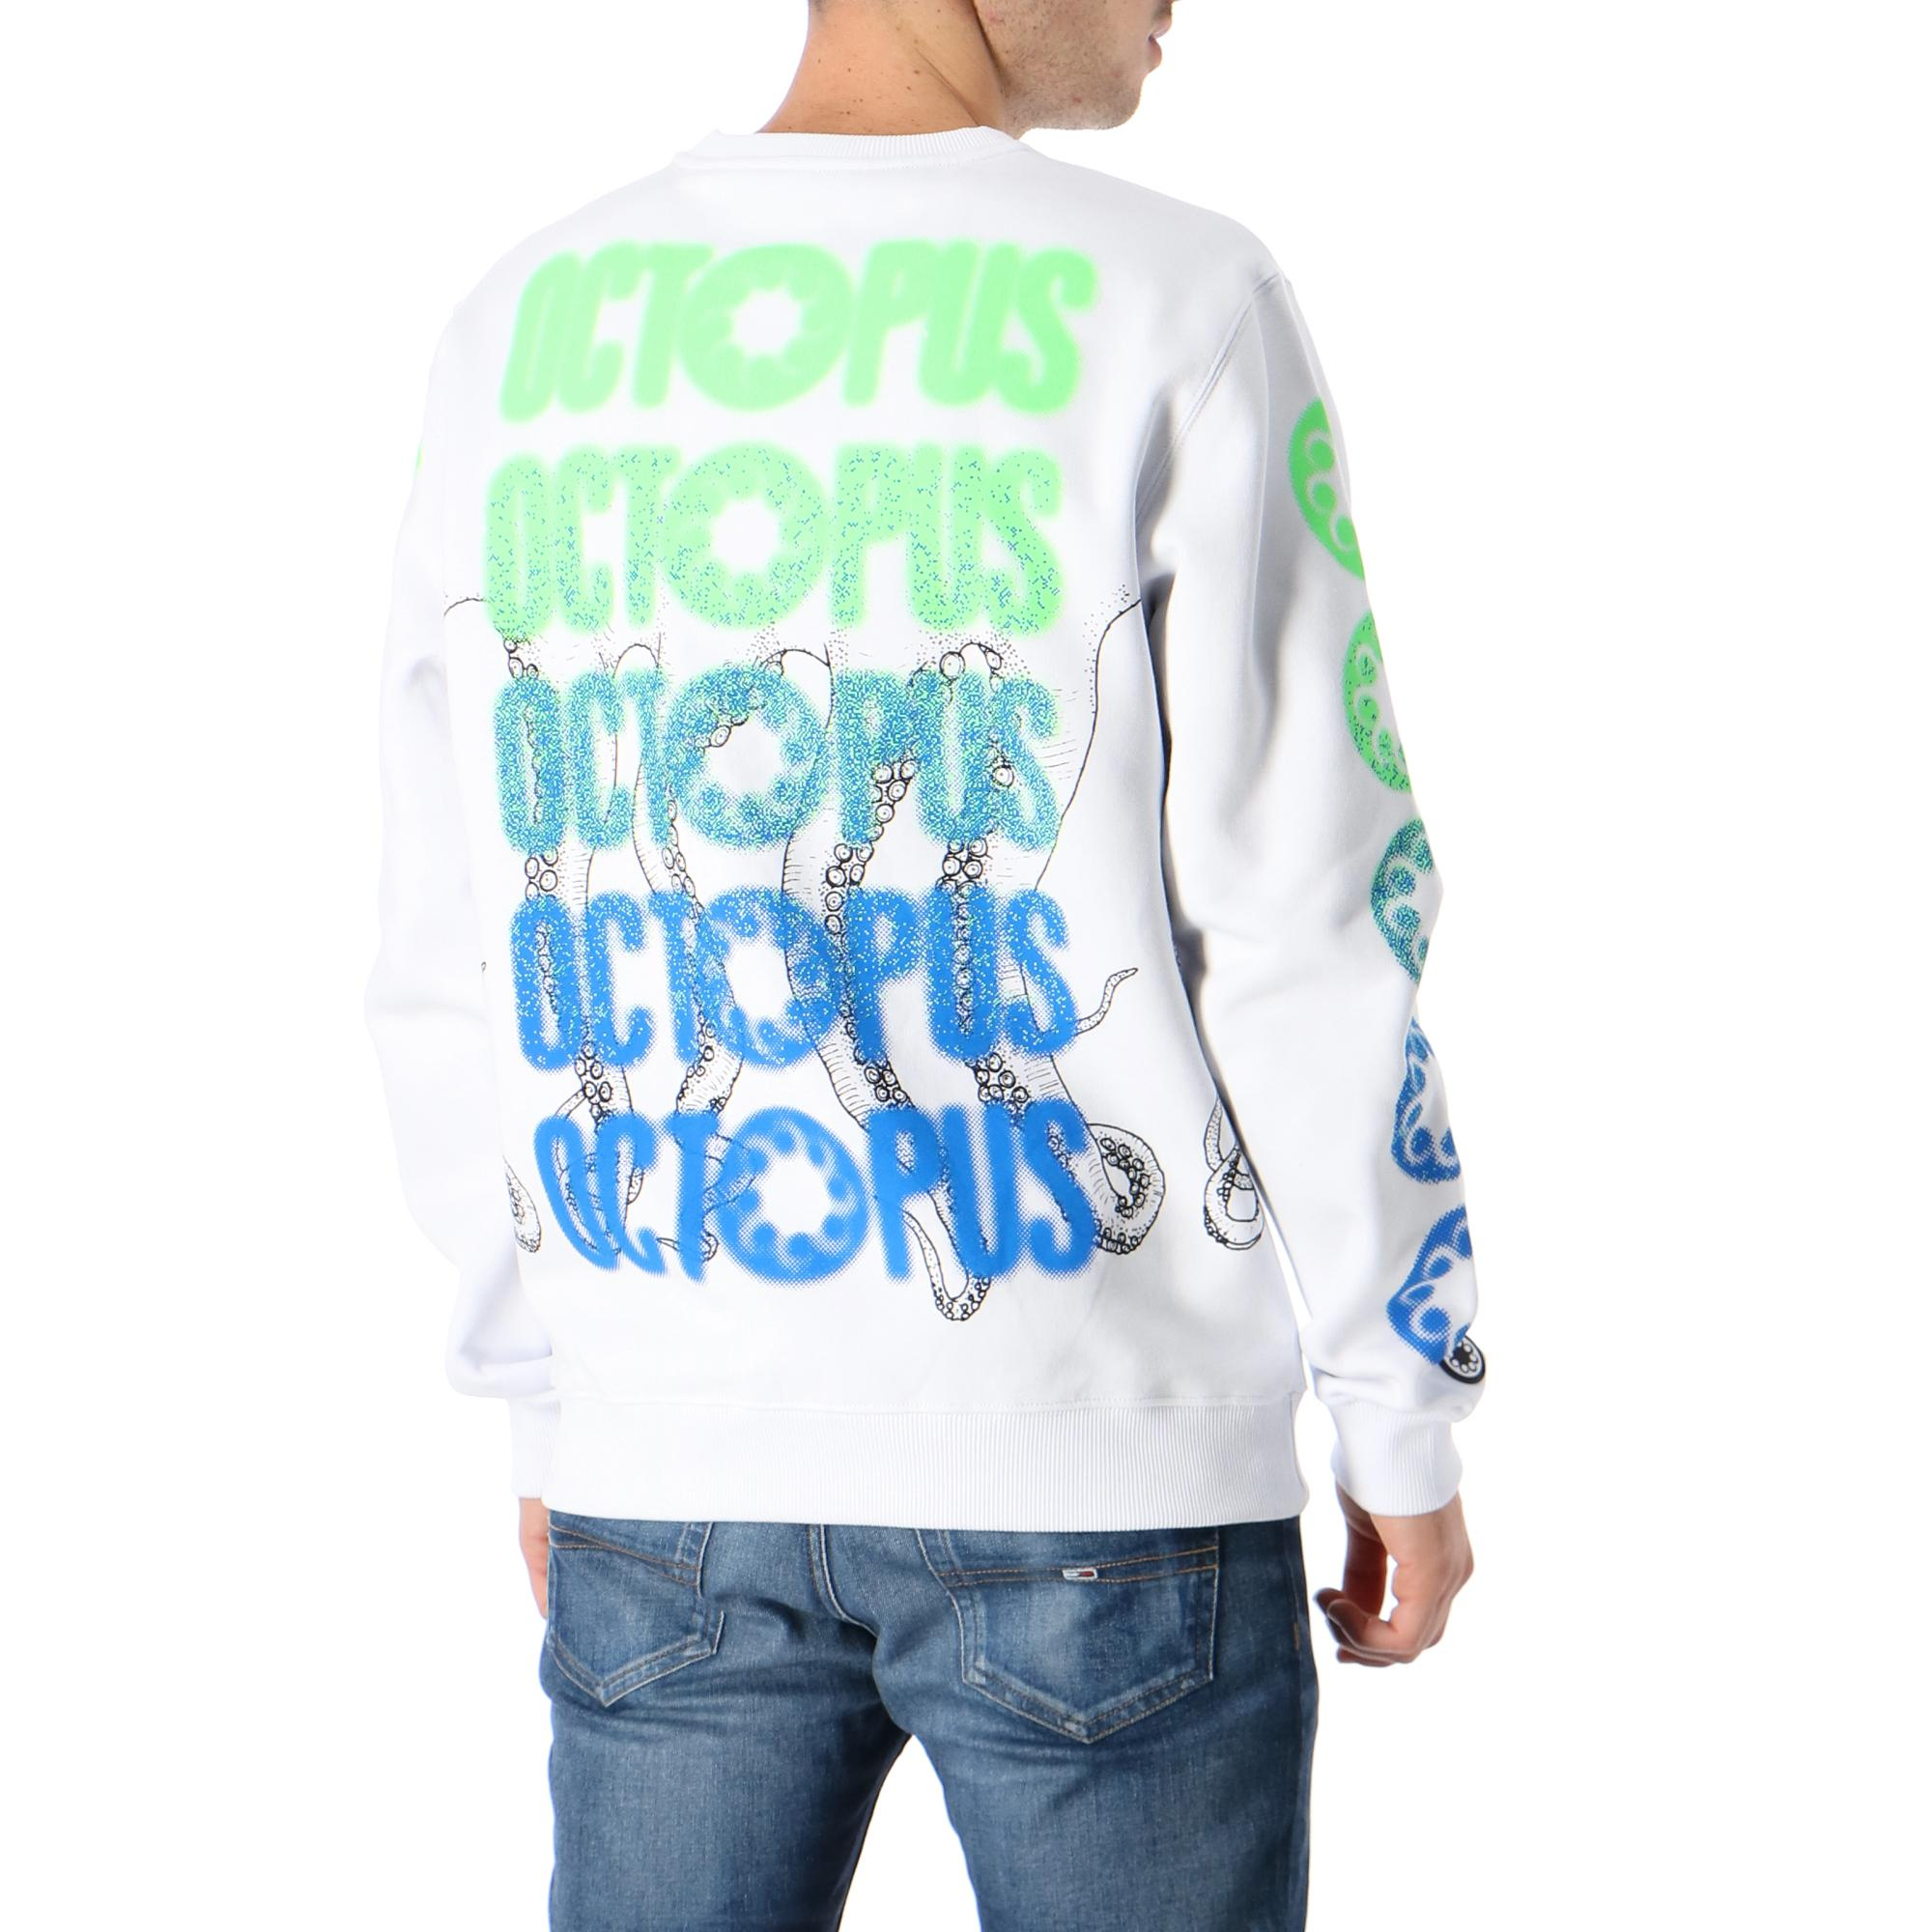 Octopus Blurred Crew WHITE